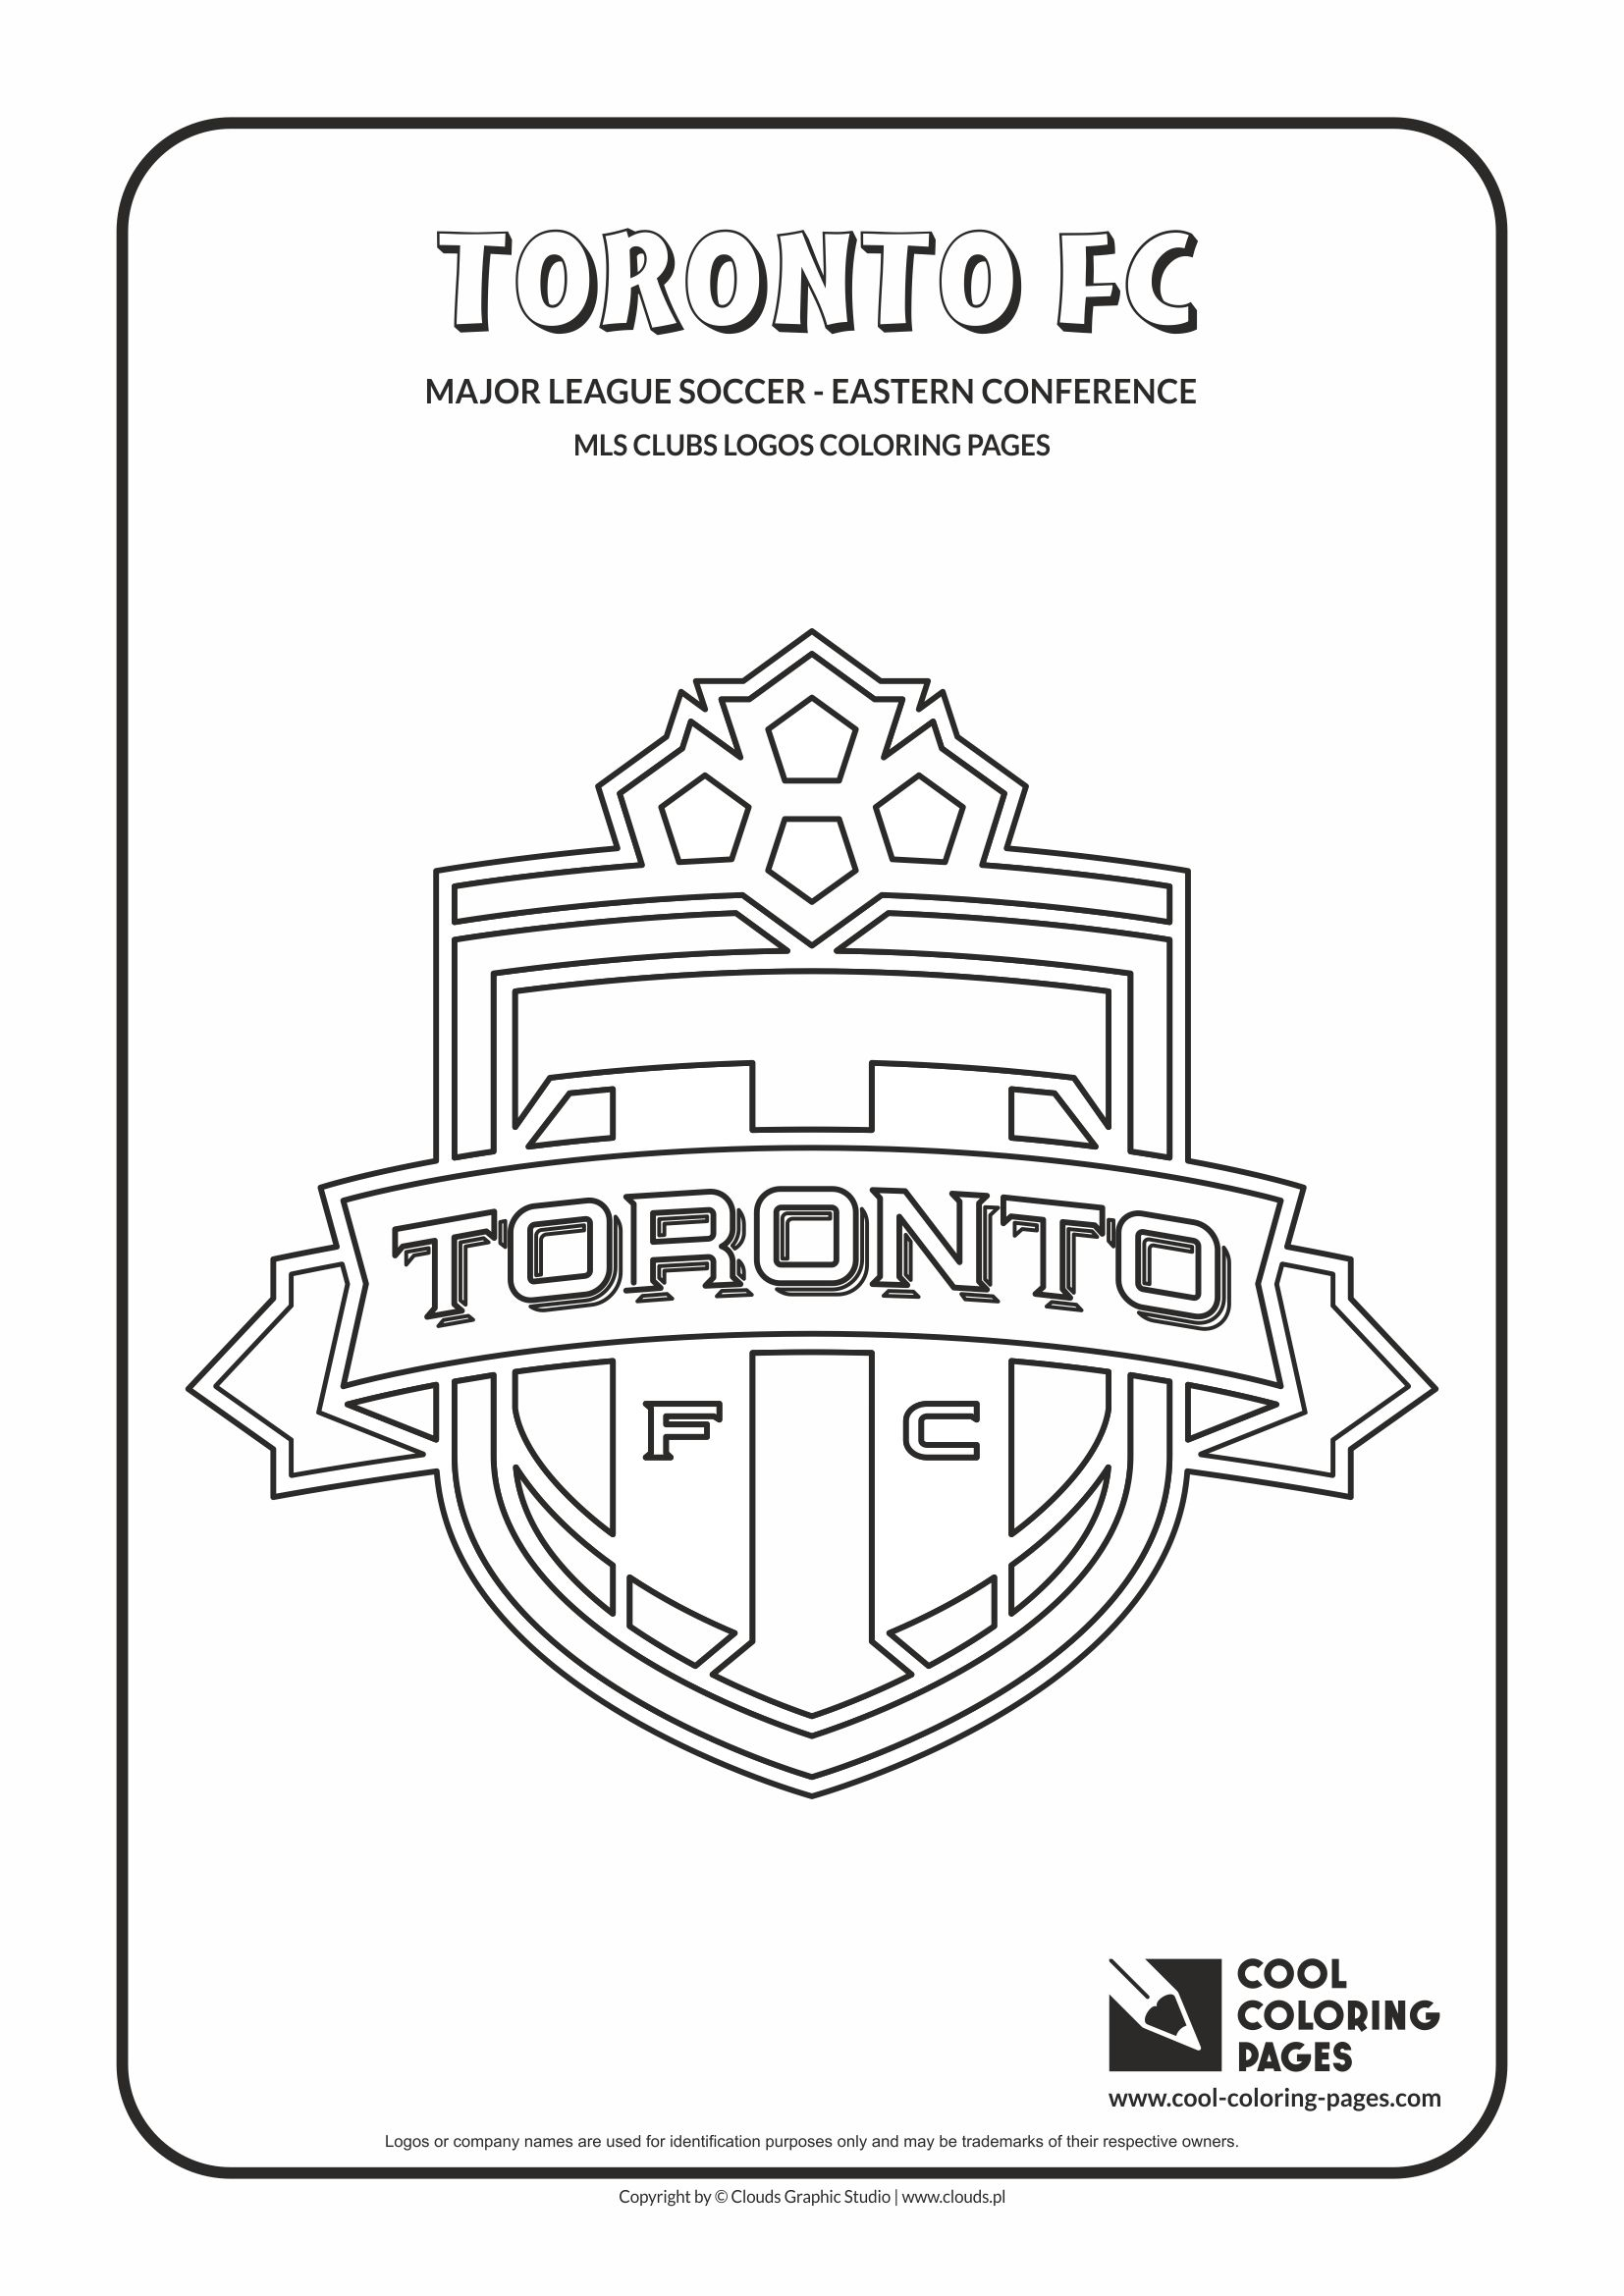 Cool Coloring Pages - Major League Soccer Logos - Eastern Conference / Toronto FC logo / Coloring page with Toronto FC logo